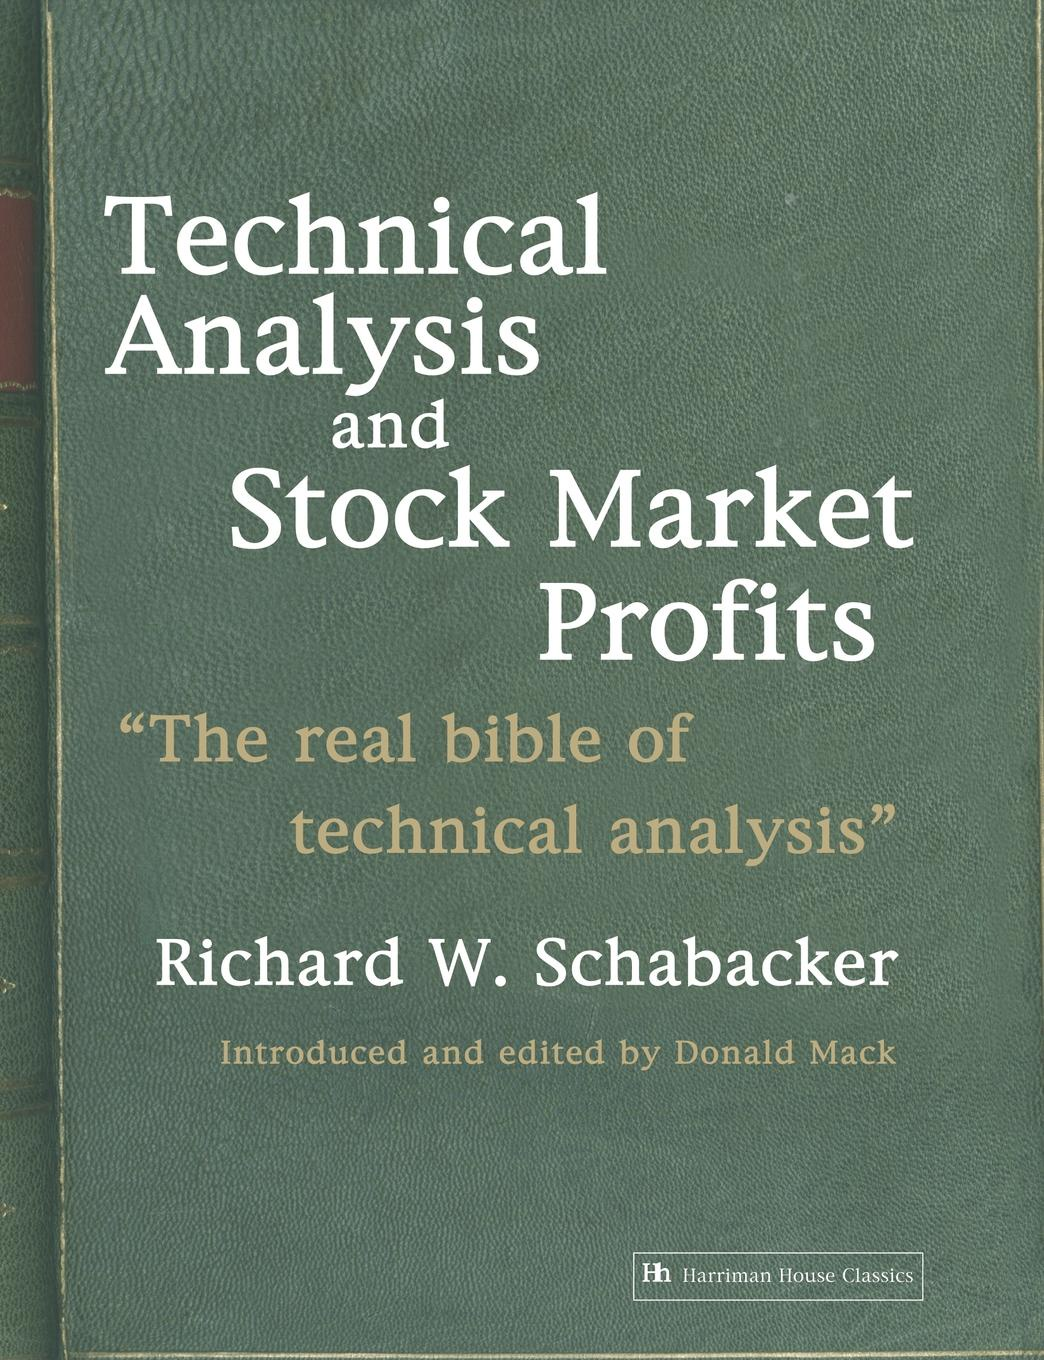 R. Schabacker, Richard Schabacker Technical Analysis and Stock Market Profits. The Real Bible of Technical Analysis michael archer d the forex chartist companion a visual approach to technical analysis